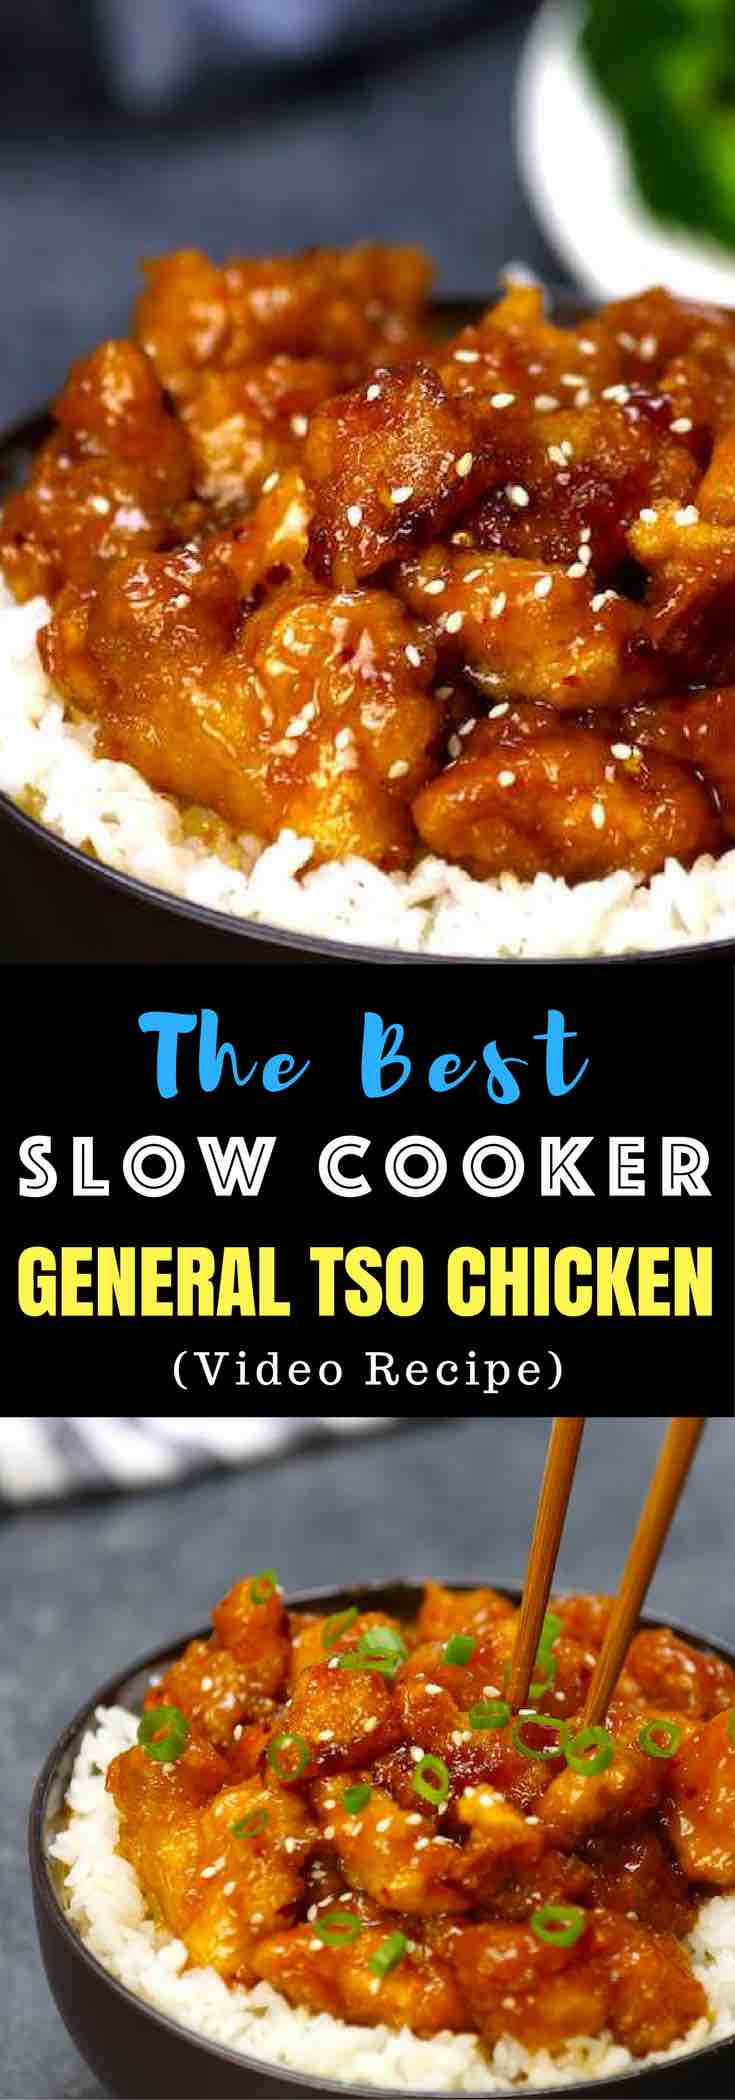 Here's a restaurant-quality recipe for the perfect easy weeknight dish! This Slow Cooker General Tso's Chicken is super easy to make, is tender, sweet and sticky. All you need is just a few simple ingredients: chicken breast, corn starch, garlic, hoisin sauce, soy sauce, rice vinegar and honey. So delicious! Easy dinner recipe. Crock Pot Dinner. Video recipe. | Tipbuzz.com